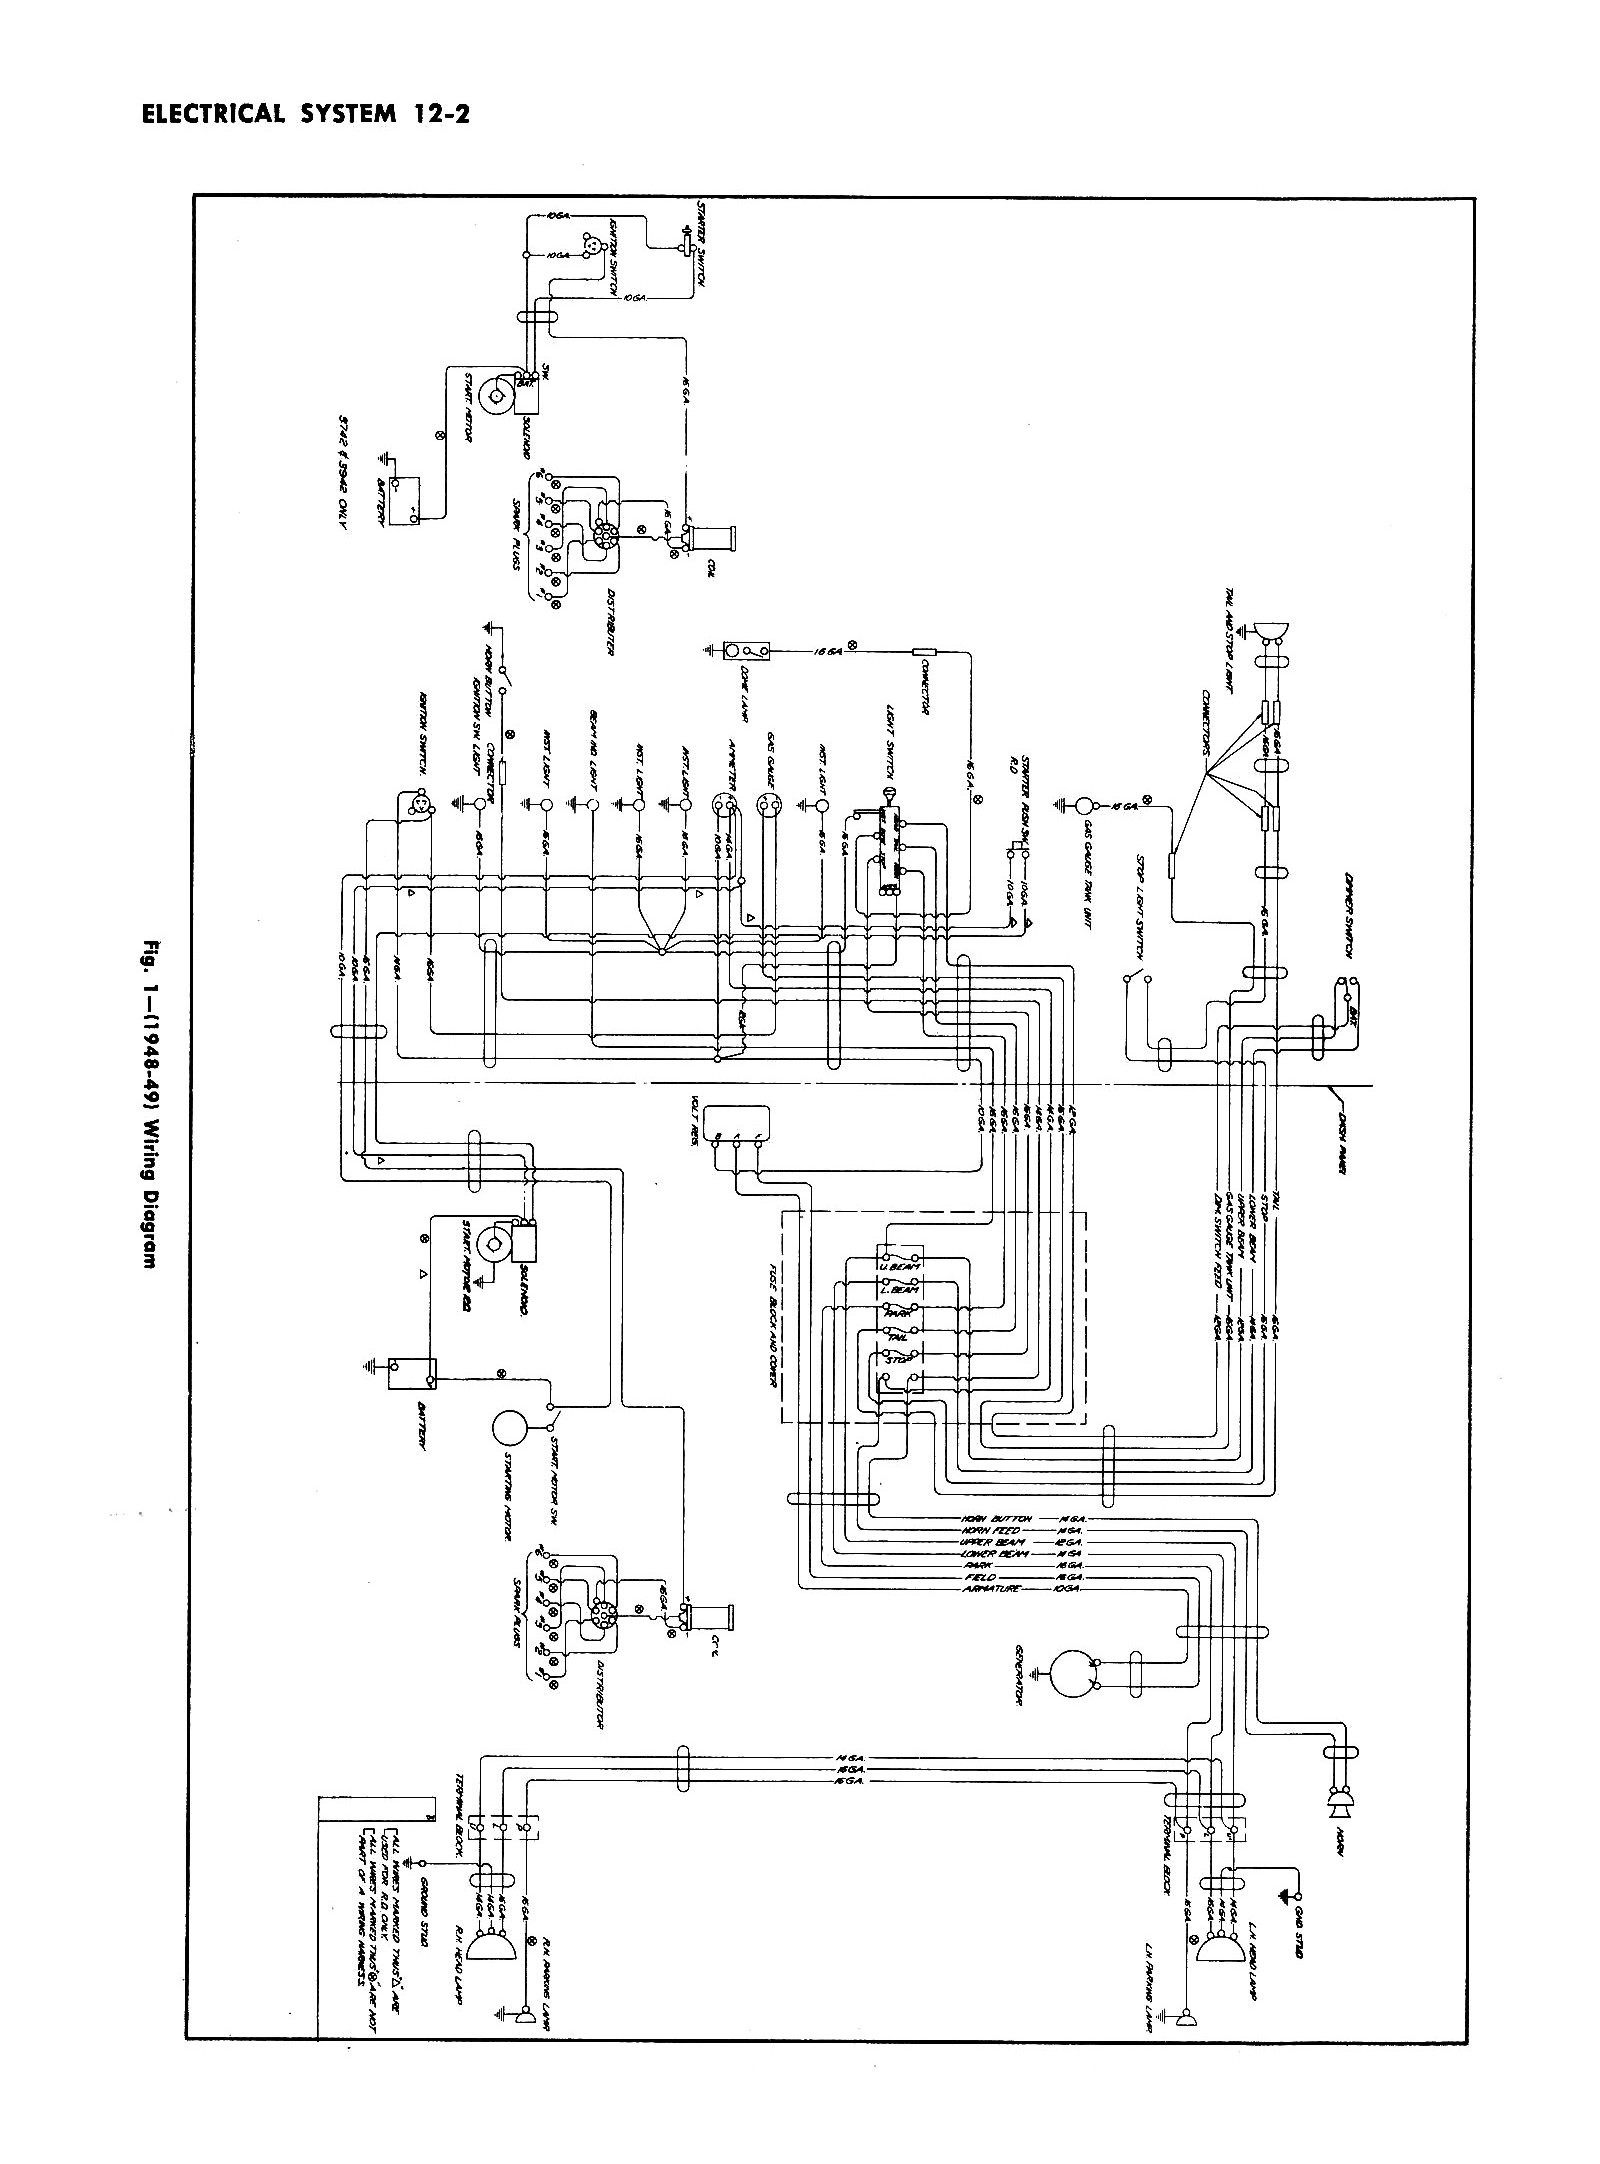 1958 chevy wiring diagram